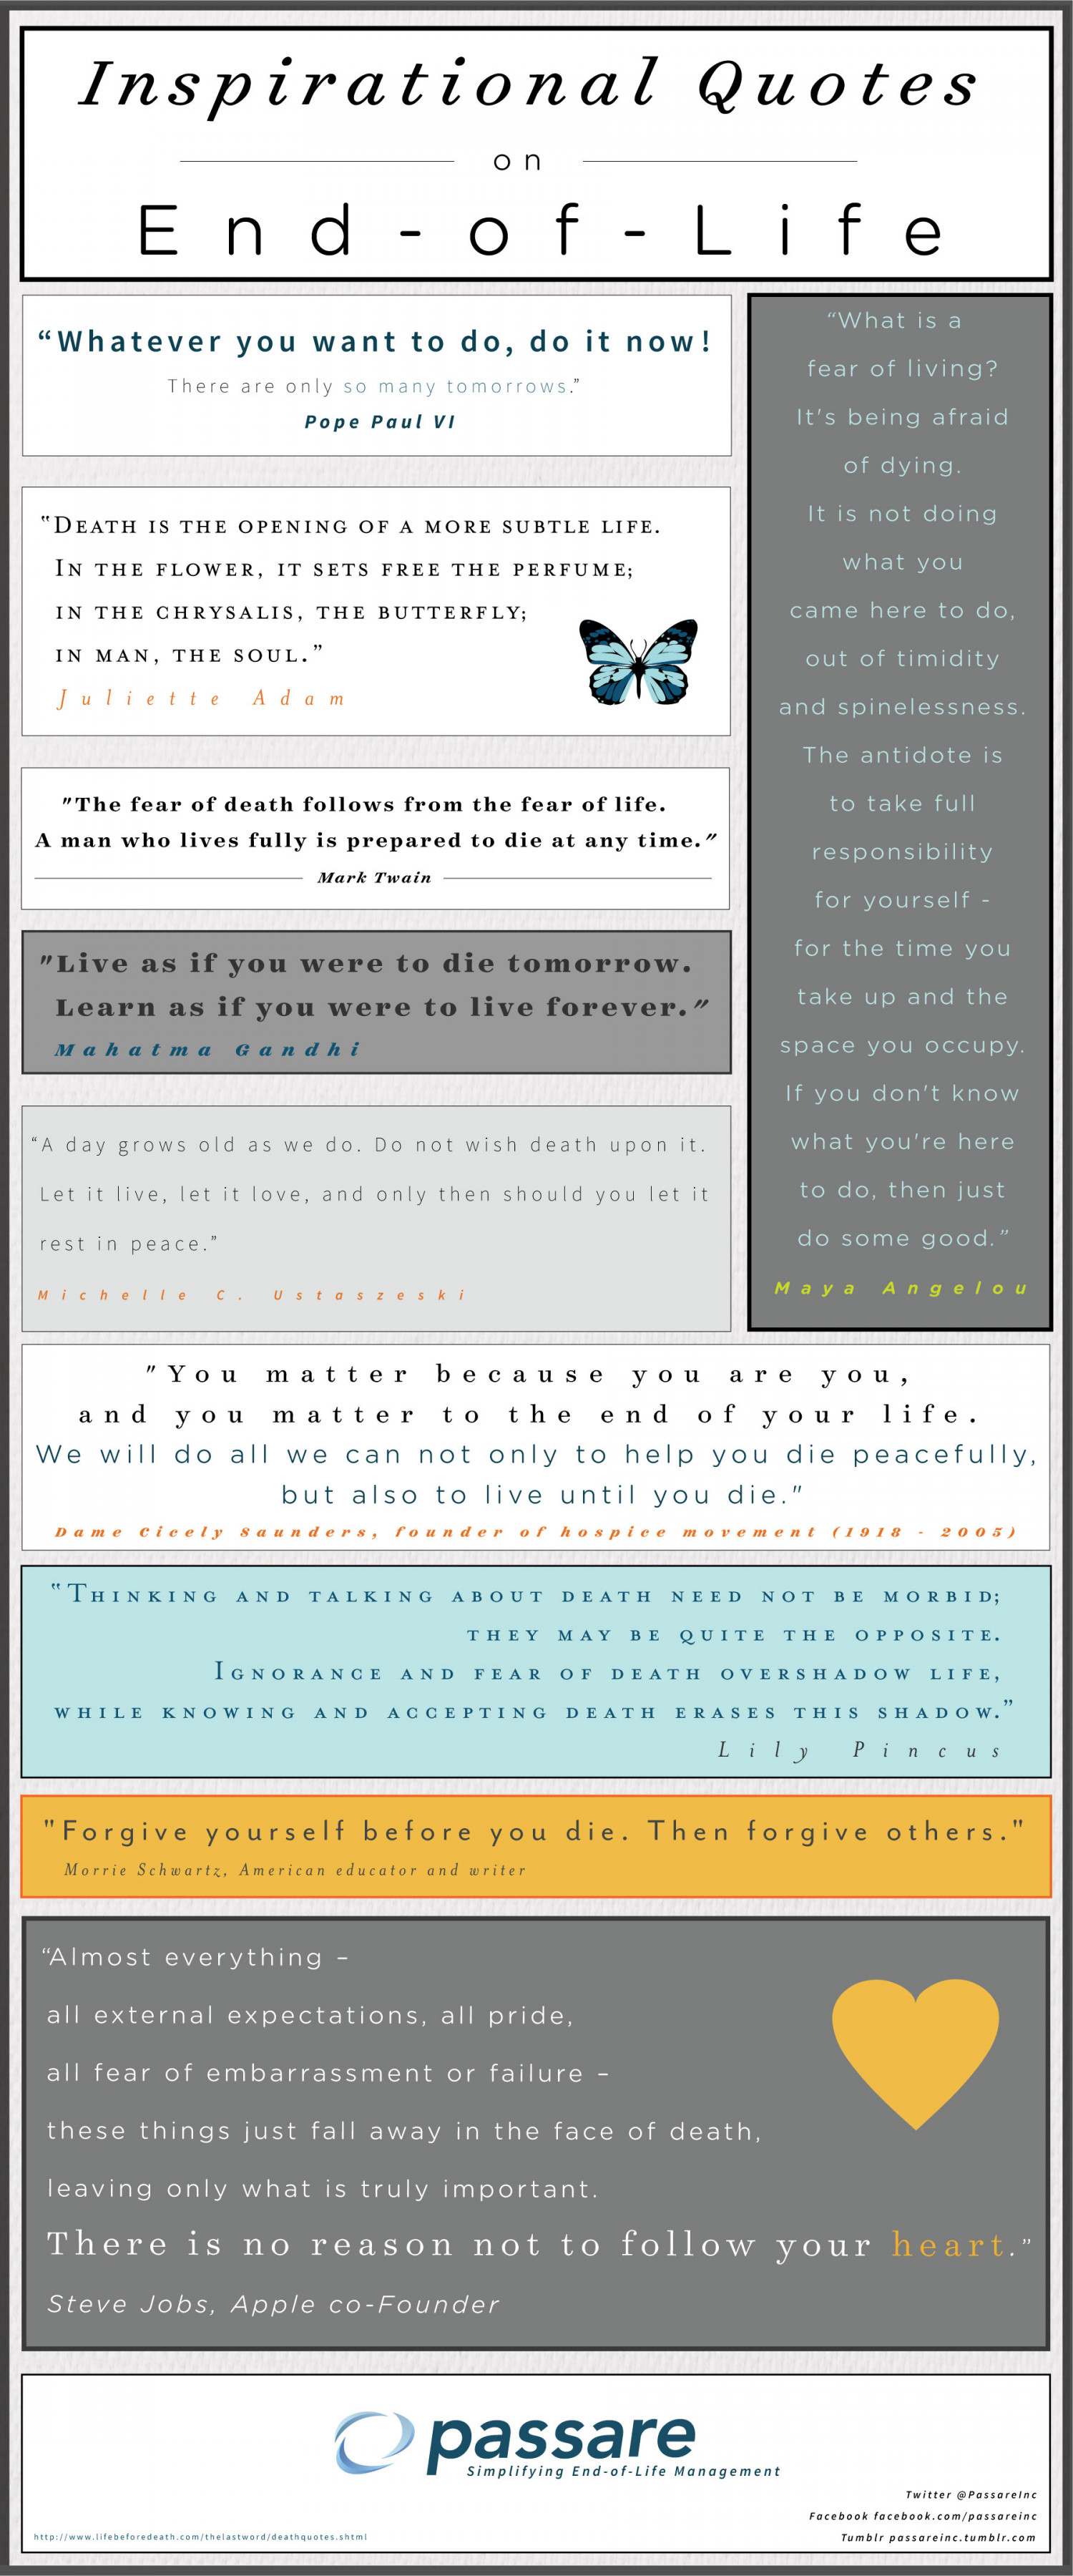 Inspirational Quotes On End Of Life Infographic